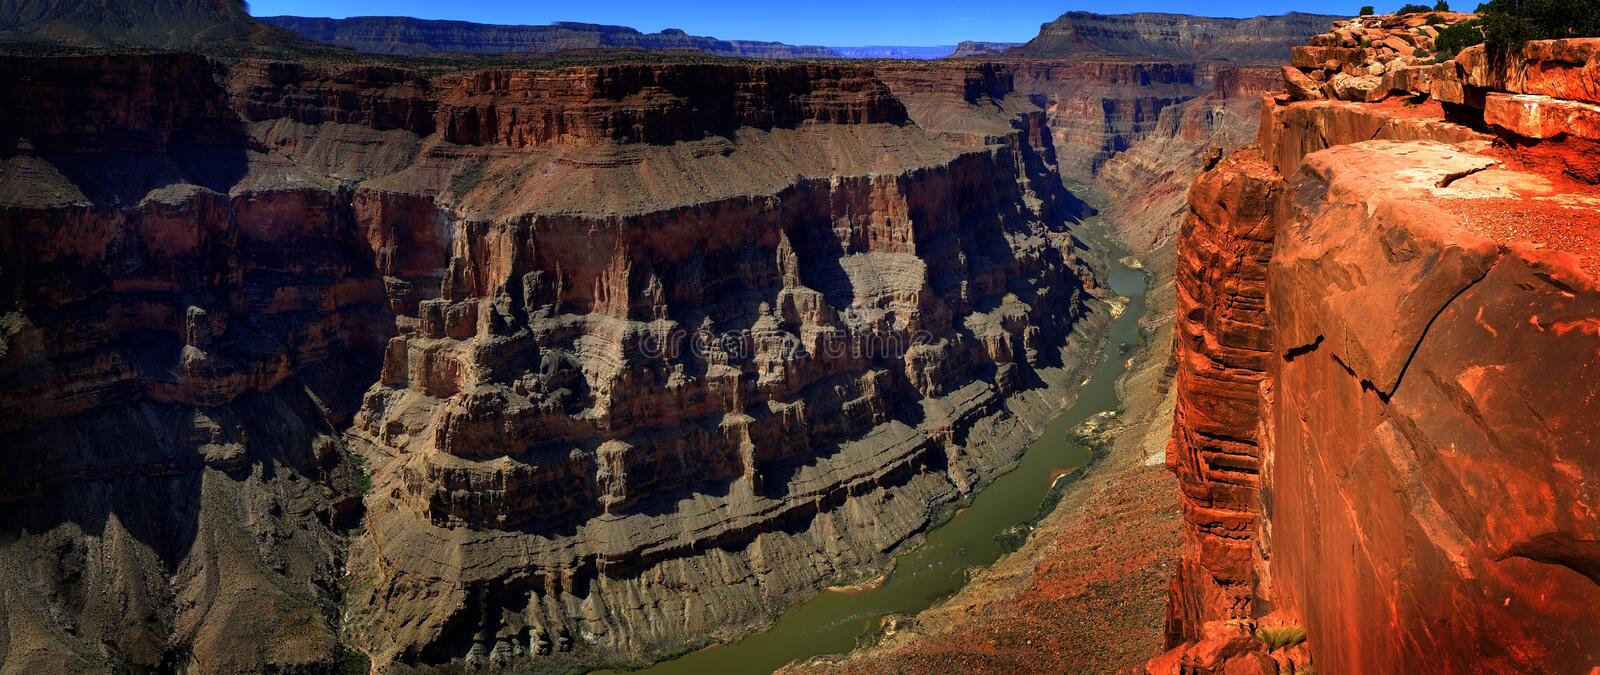 Grand Canyon with Colorado River Gorge Landmark stock image